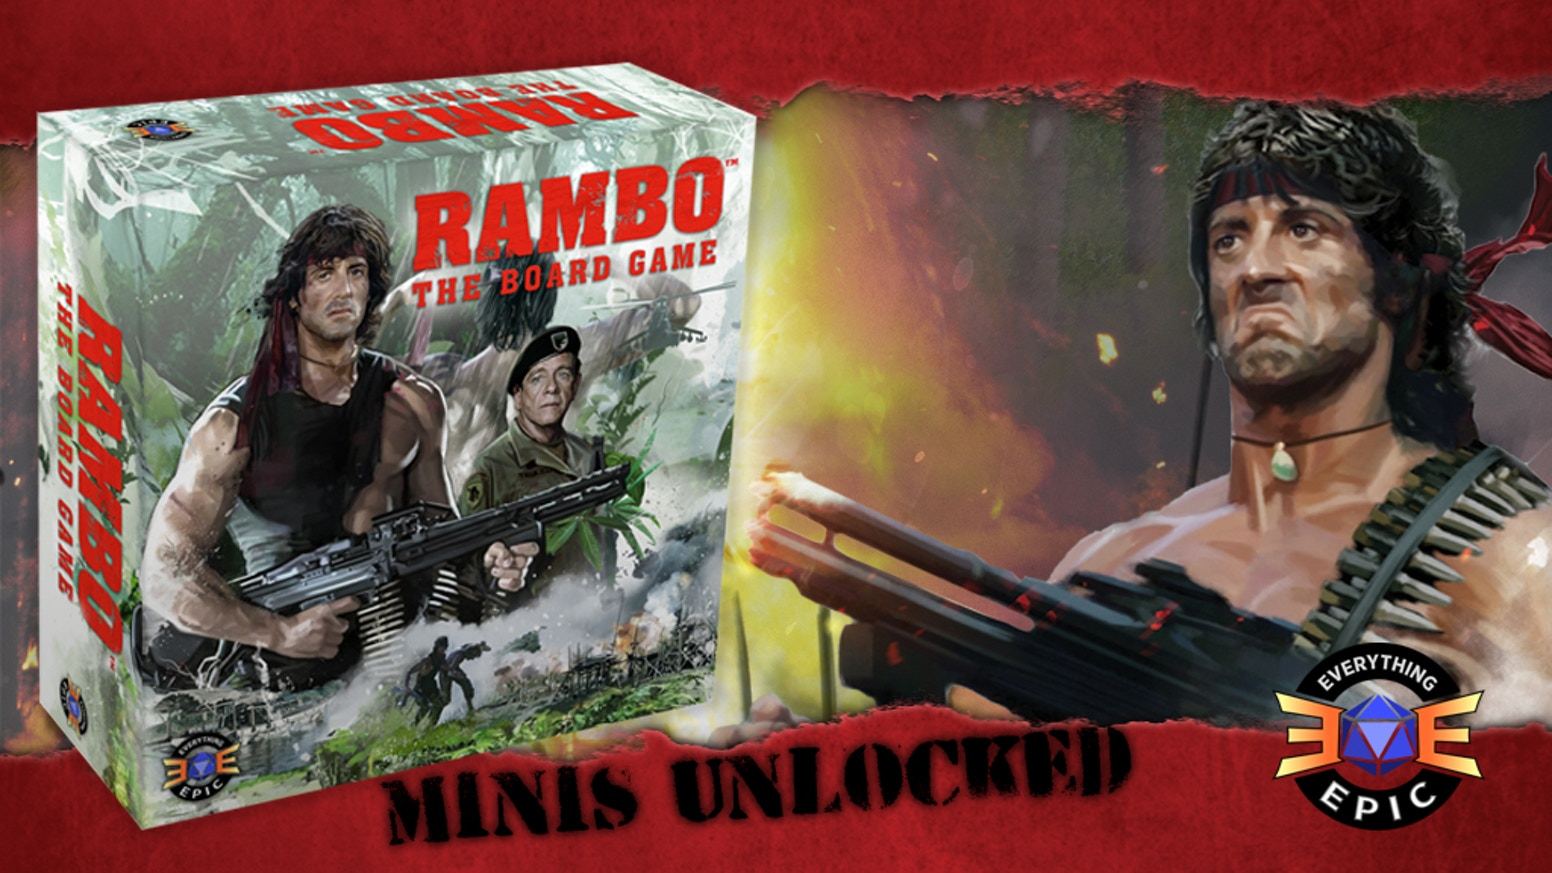 No Man, No Law, No War Can Stop RAMBO! The Tactical Mission-Based Cooperative Board Game with Unique Stealth and Fog of War Mechanics!